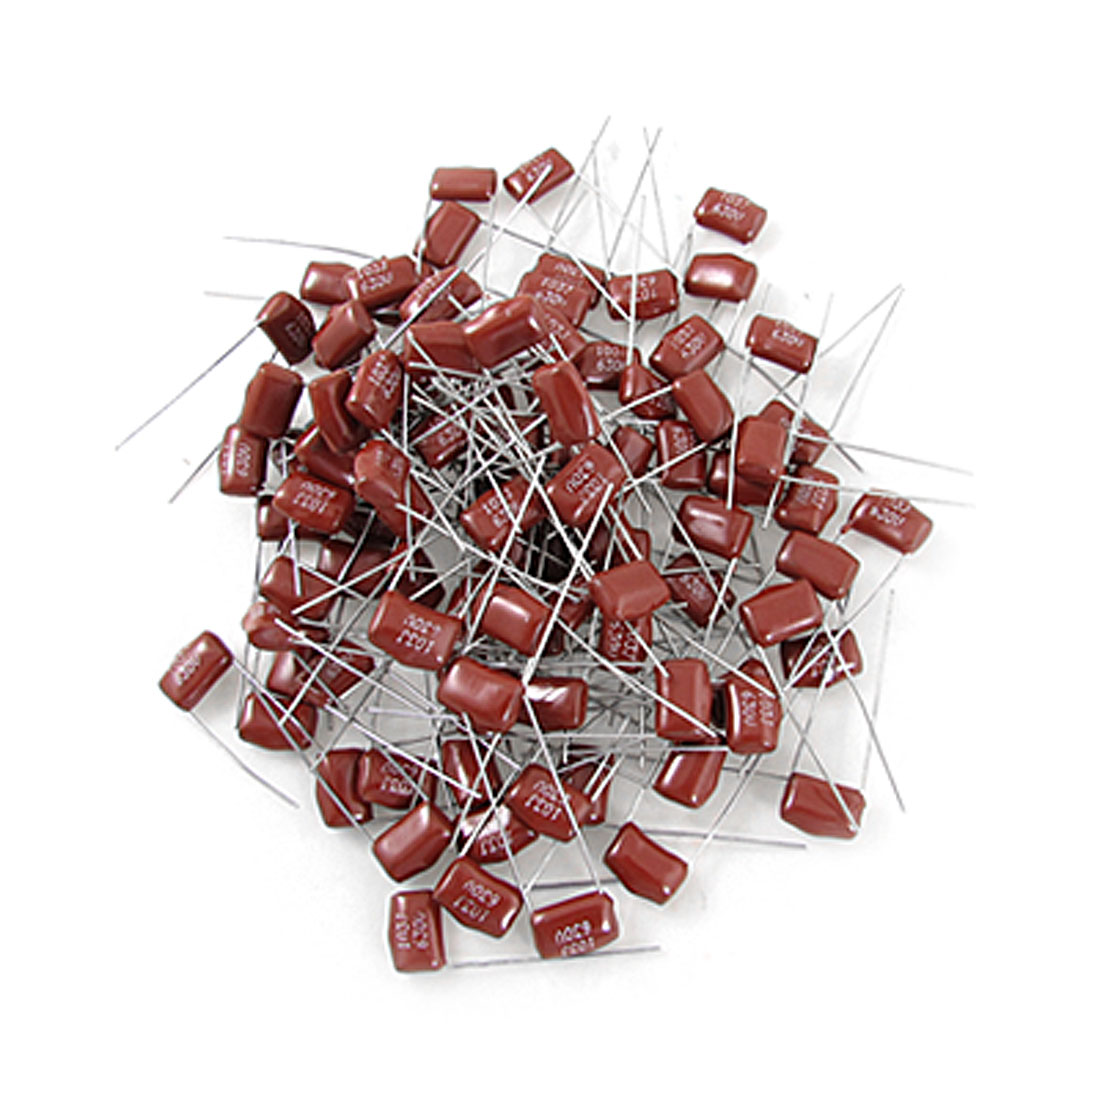 100 Pcs 0.01uF 630V Metallized Mylar Polyester Film Capacitor